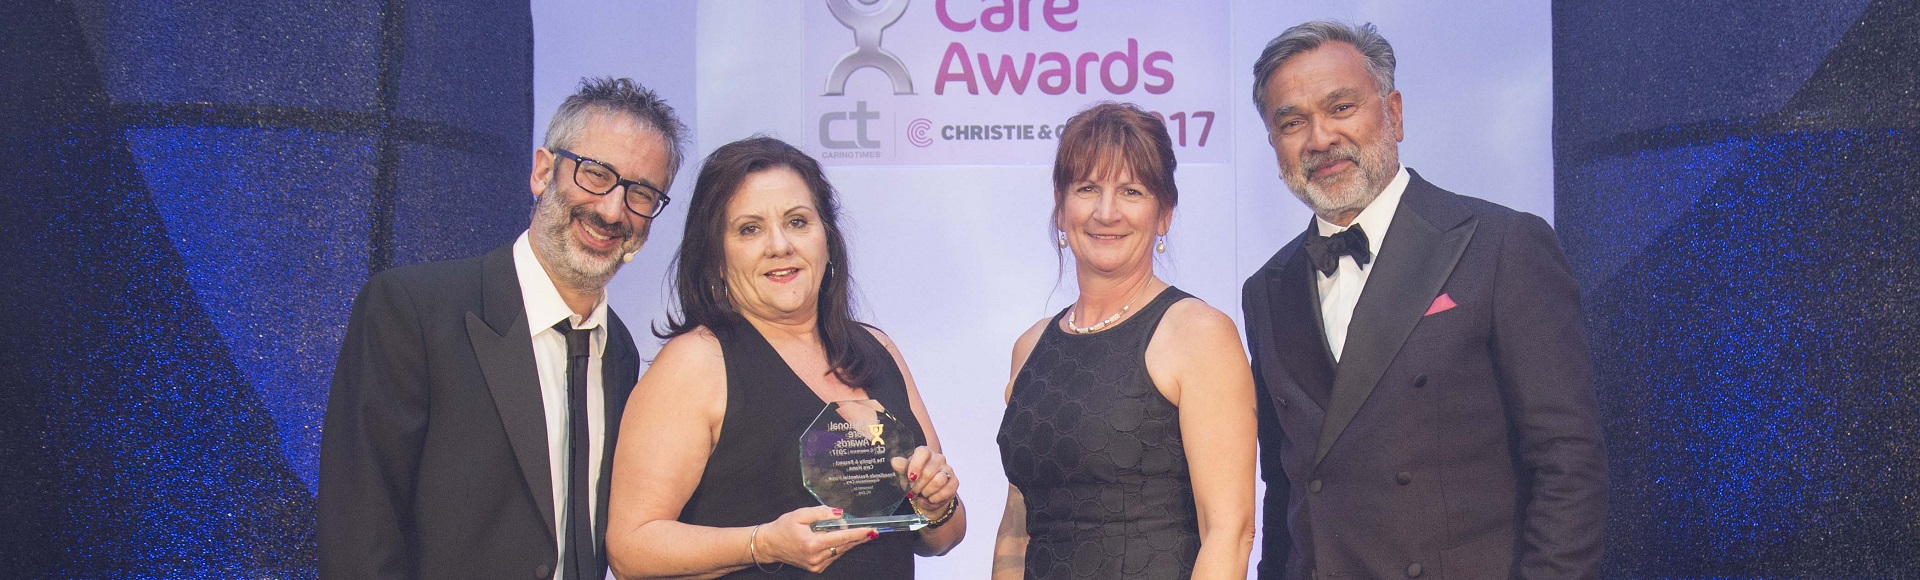 Care Industry Awards